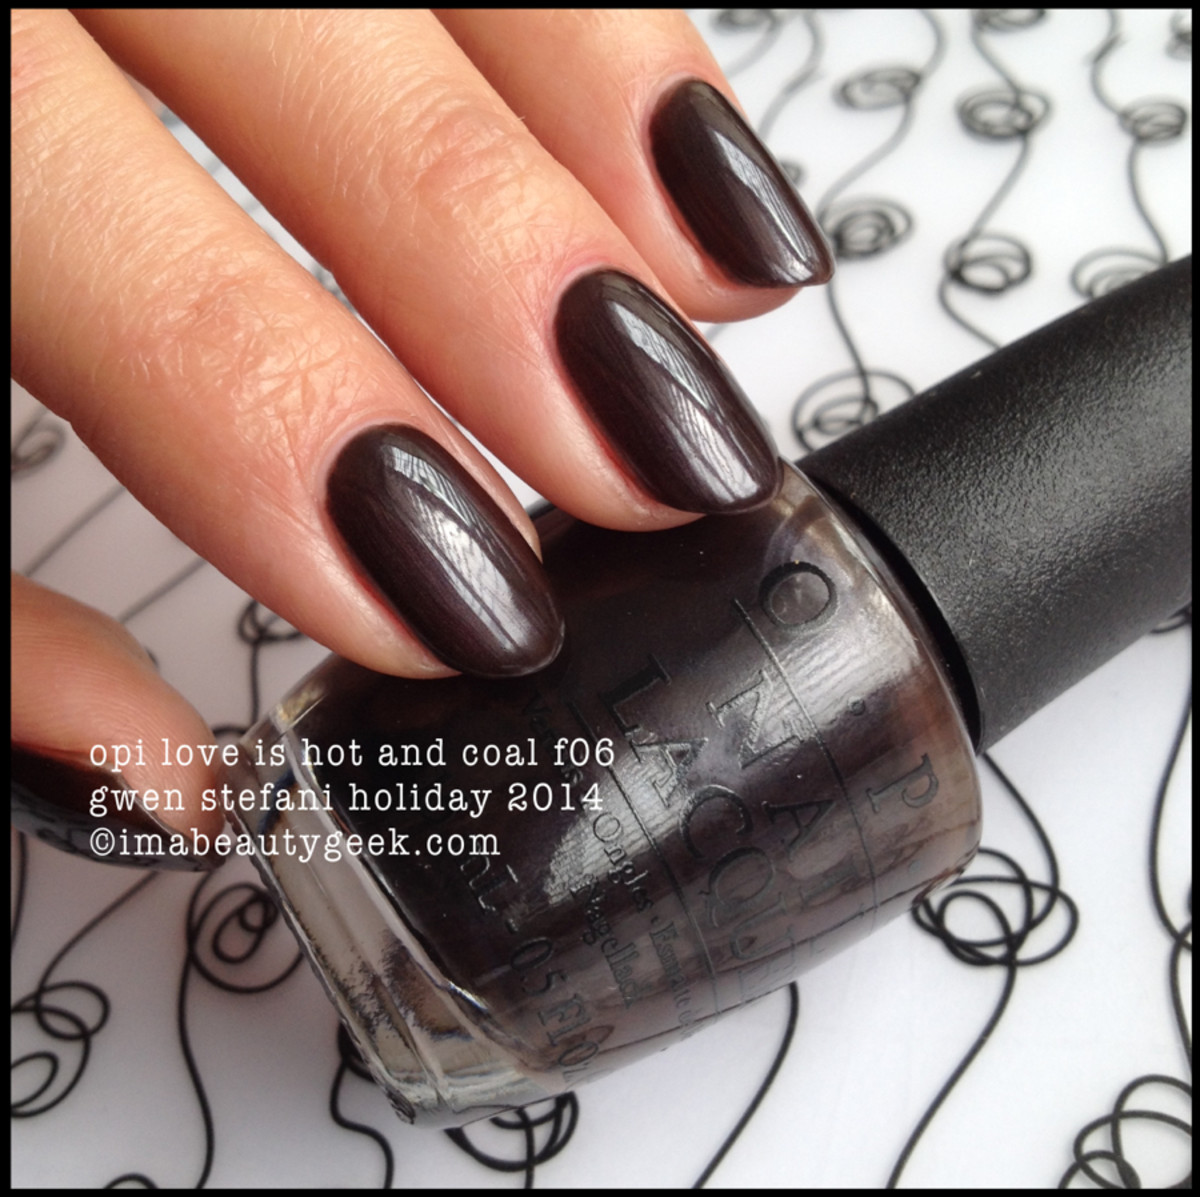 OPI Love is Hot and Coal Gwen Stefani Holiday 2014